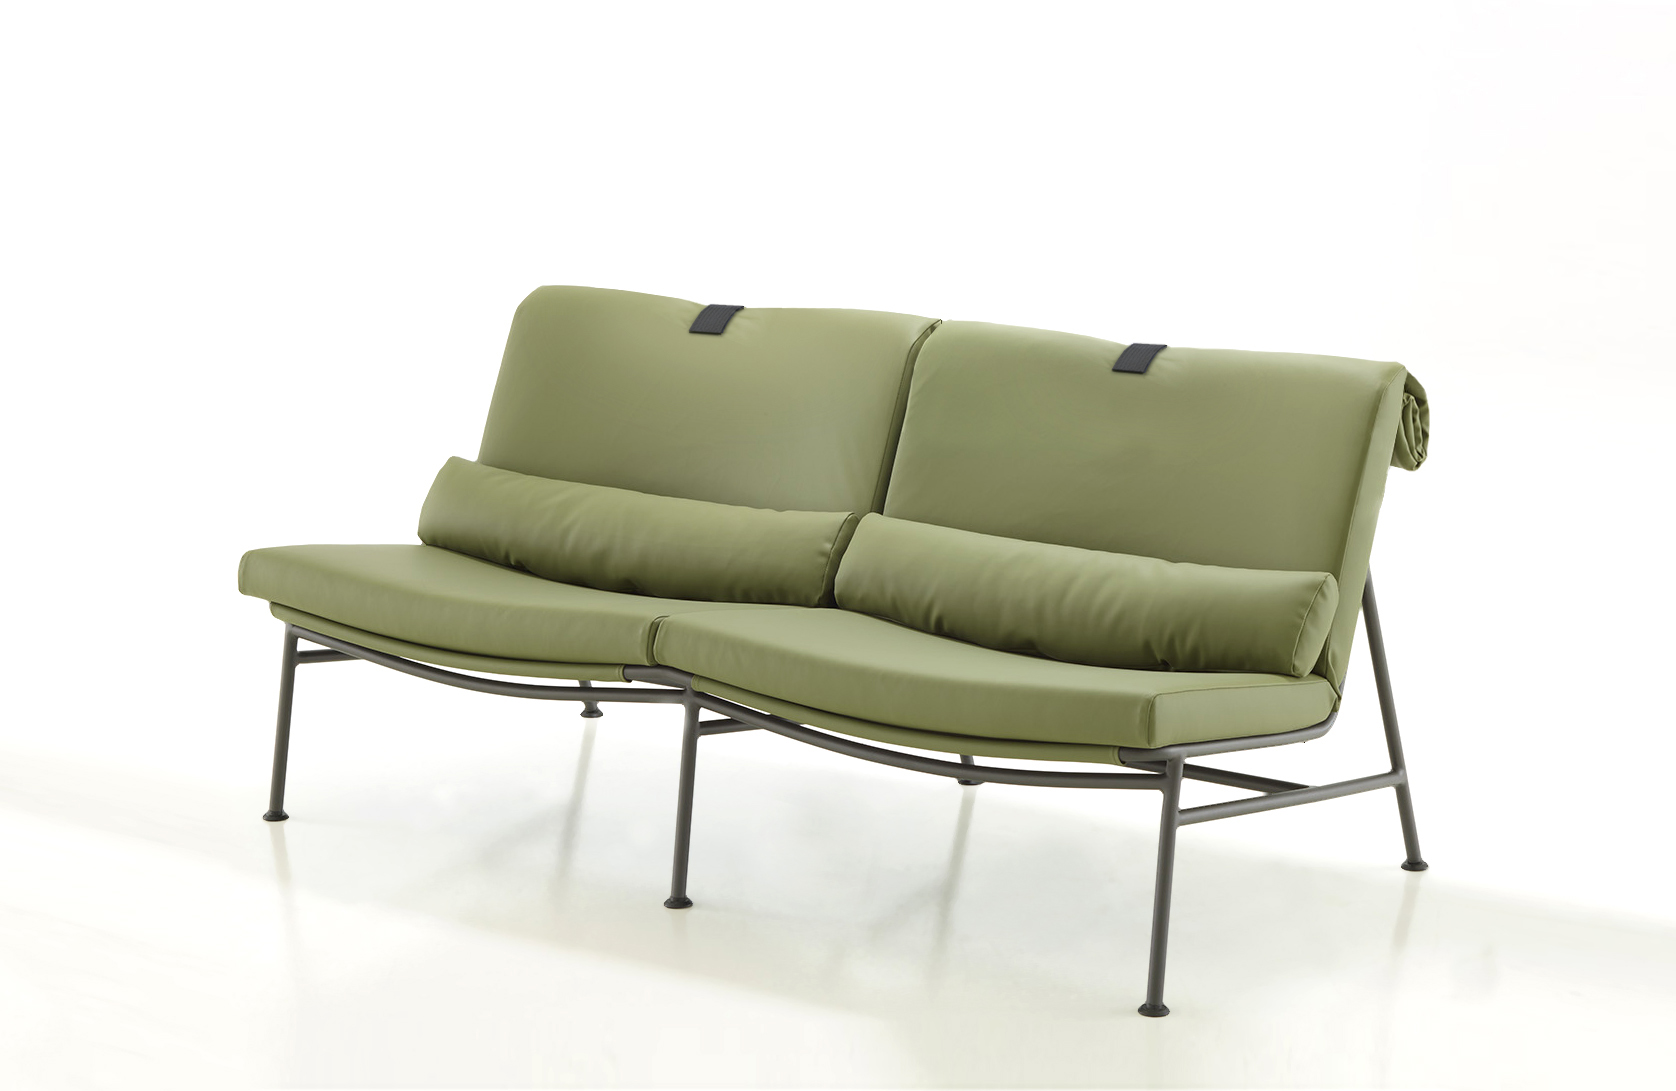 Ligne Roset Sofa Backpack Outdoor Seating Collection By Lucidipevere For Ligne